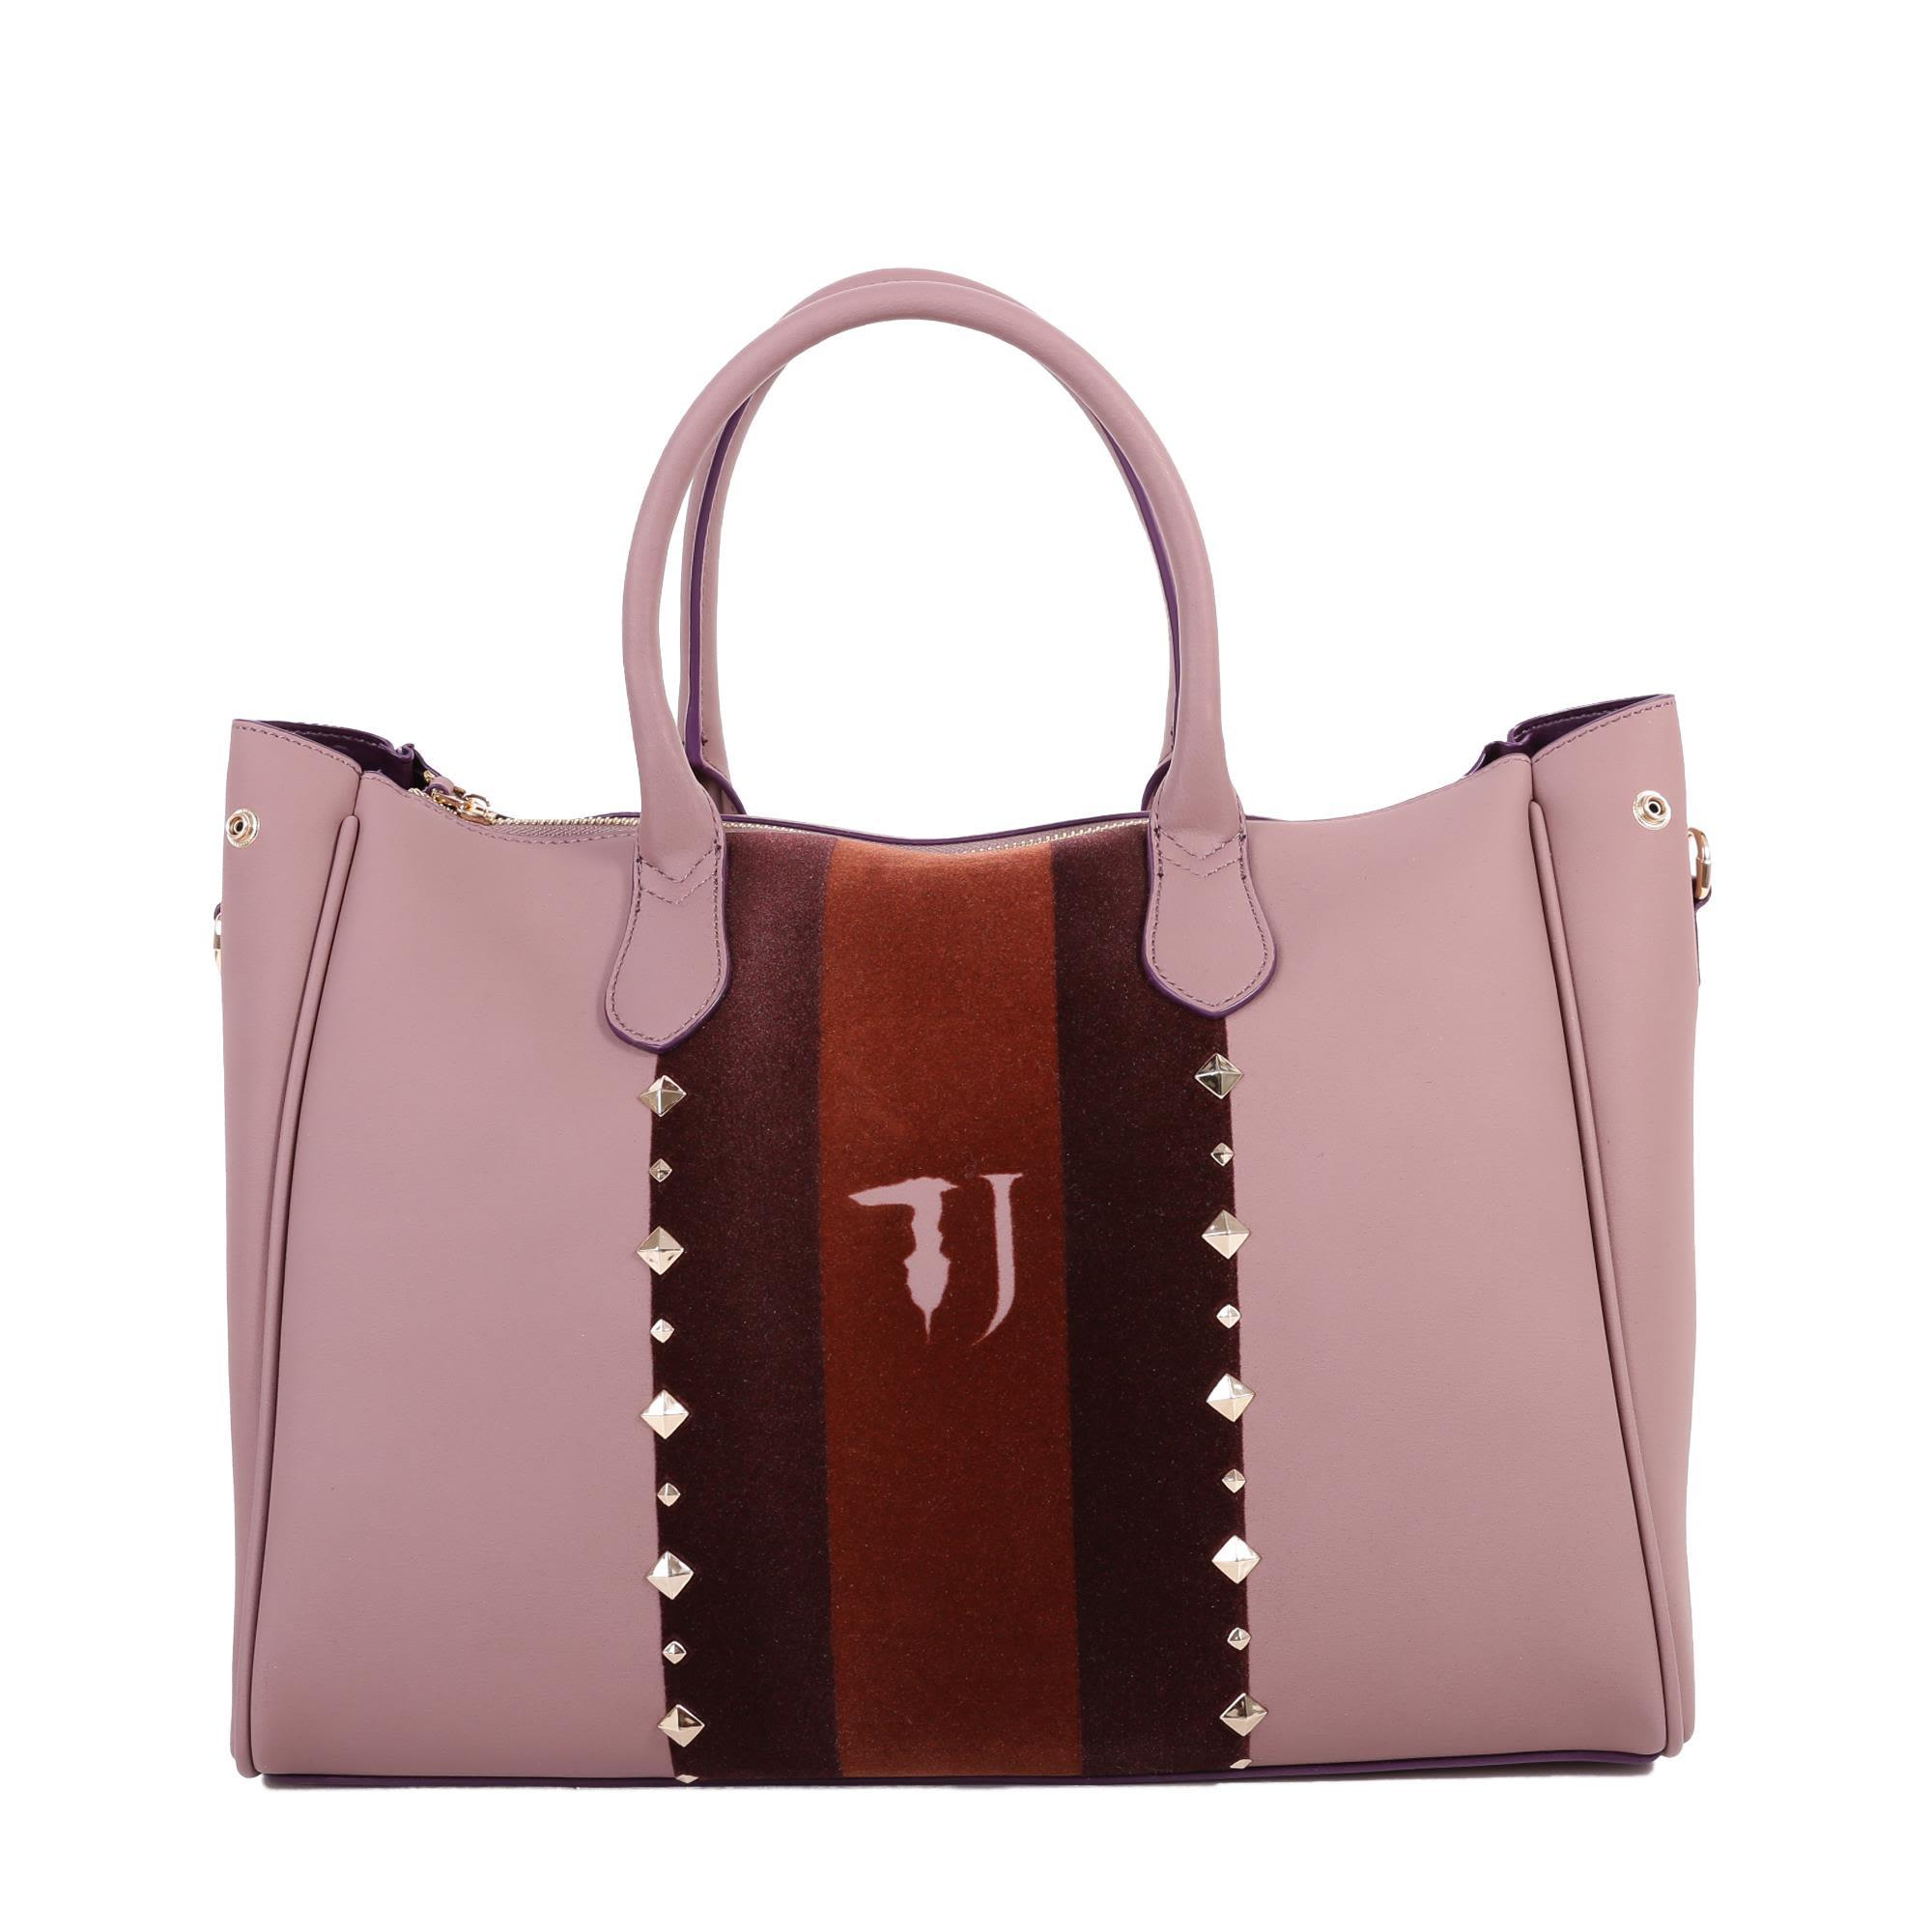 Trussardi Blondie Faux Leather Tote Bag In Pink